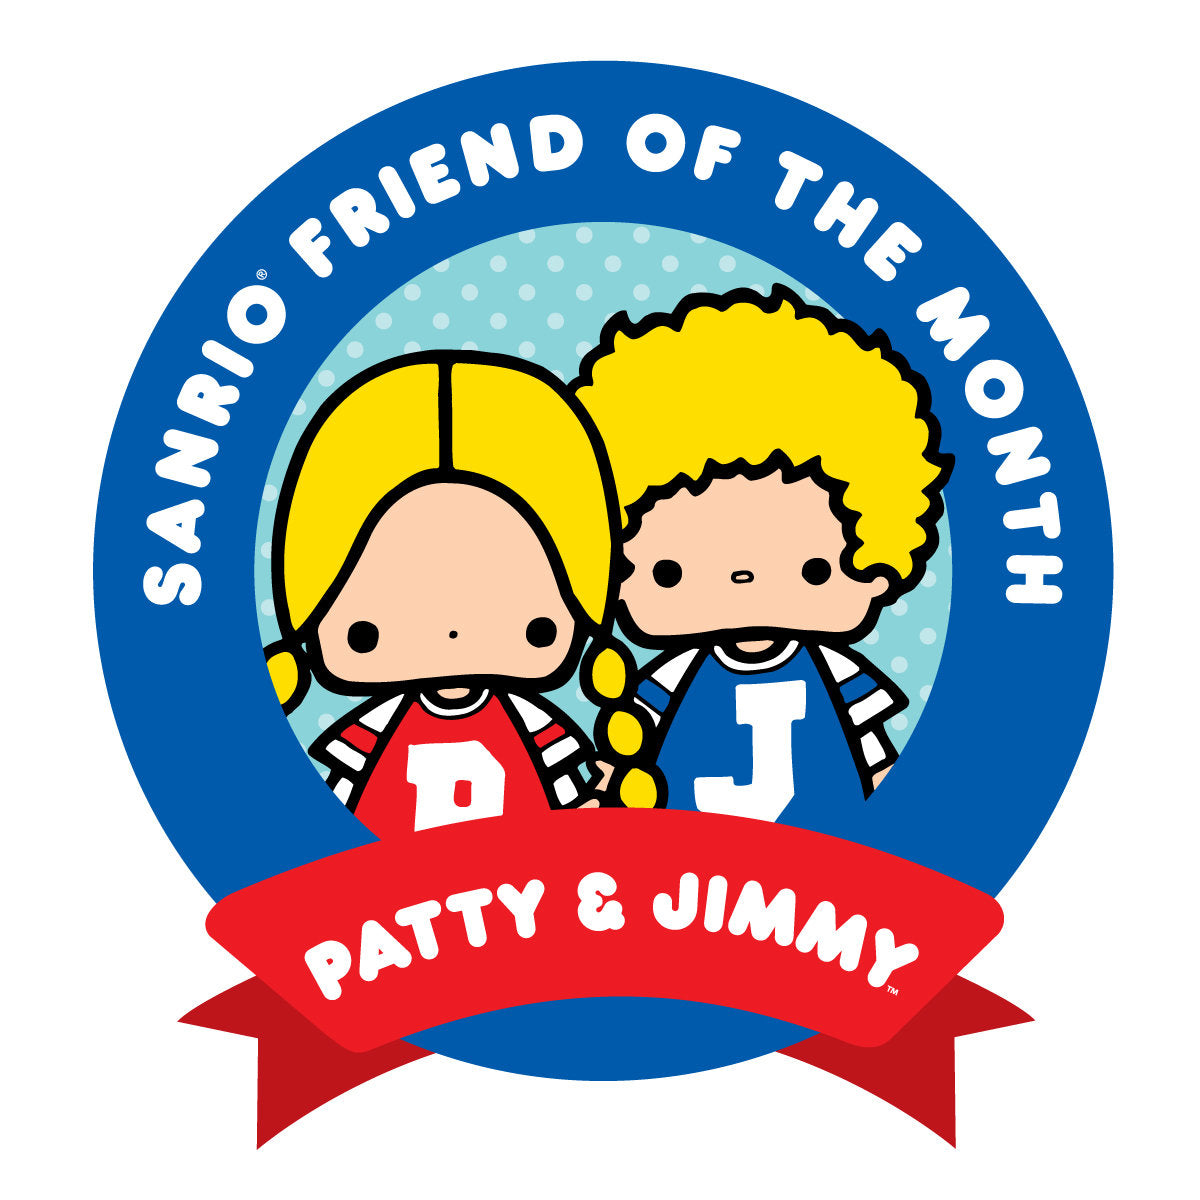 Sanrio Friend of the Month - Patty & Jimmy